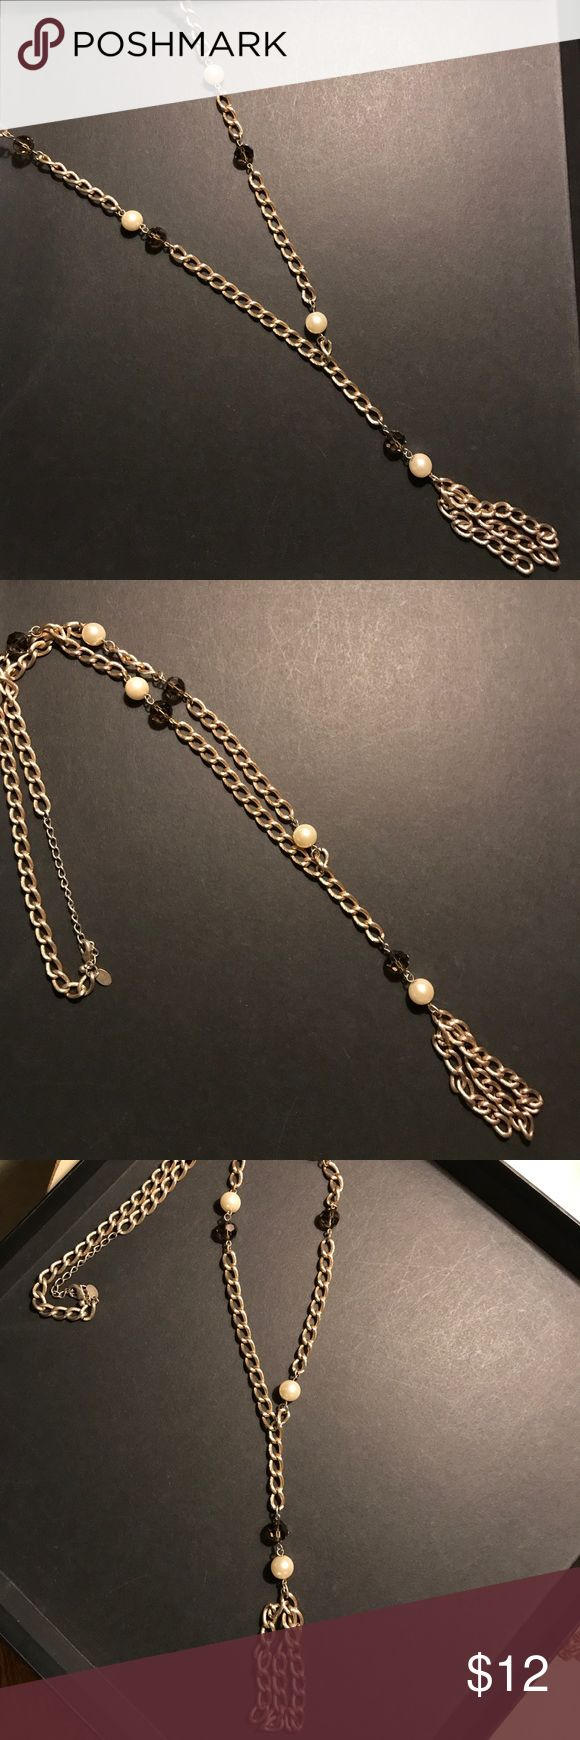 Lia Sophia necklace Lia Sophia necklace. Gold long chain with pearls. Brand new never worn Lia Sophia Jewelry Necklaces